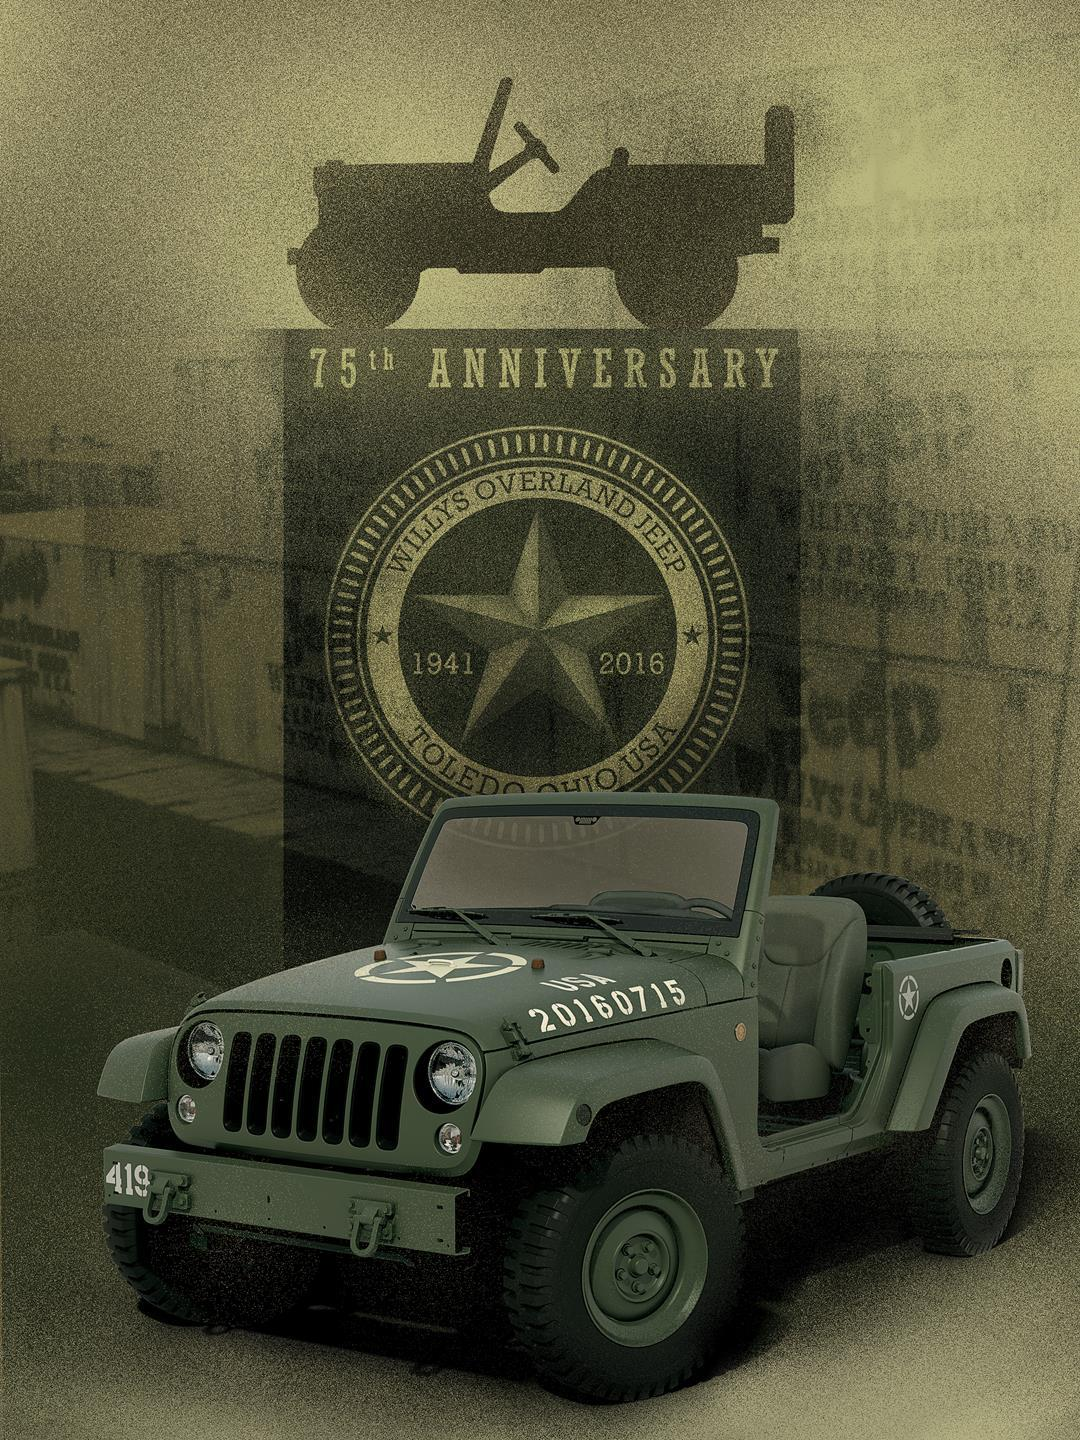 Jeep Wrangler 75th Salute Edition Concept pictures and wallpaper